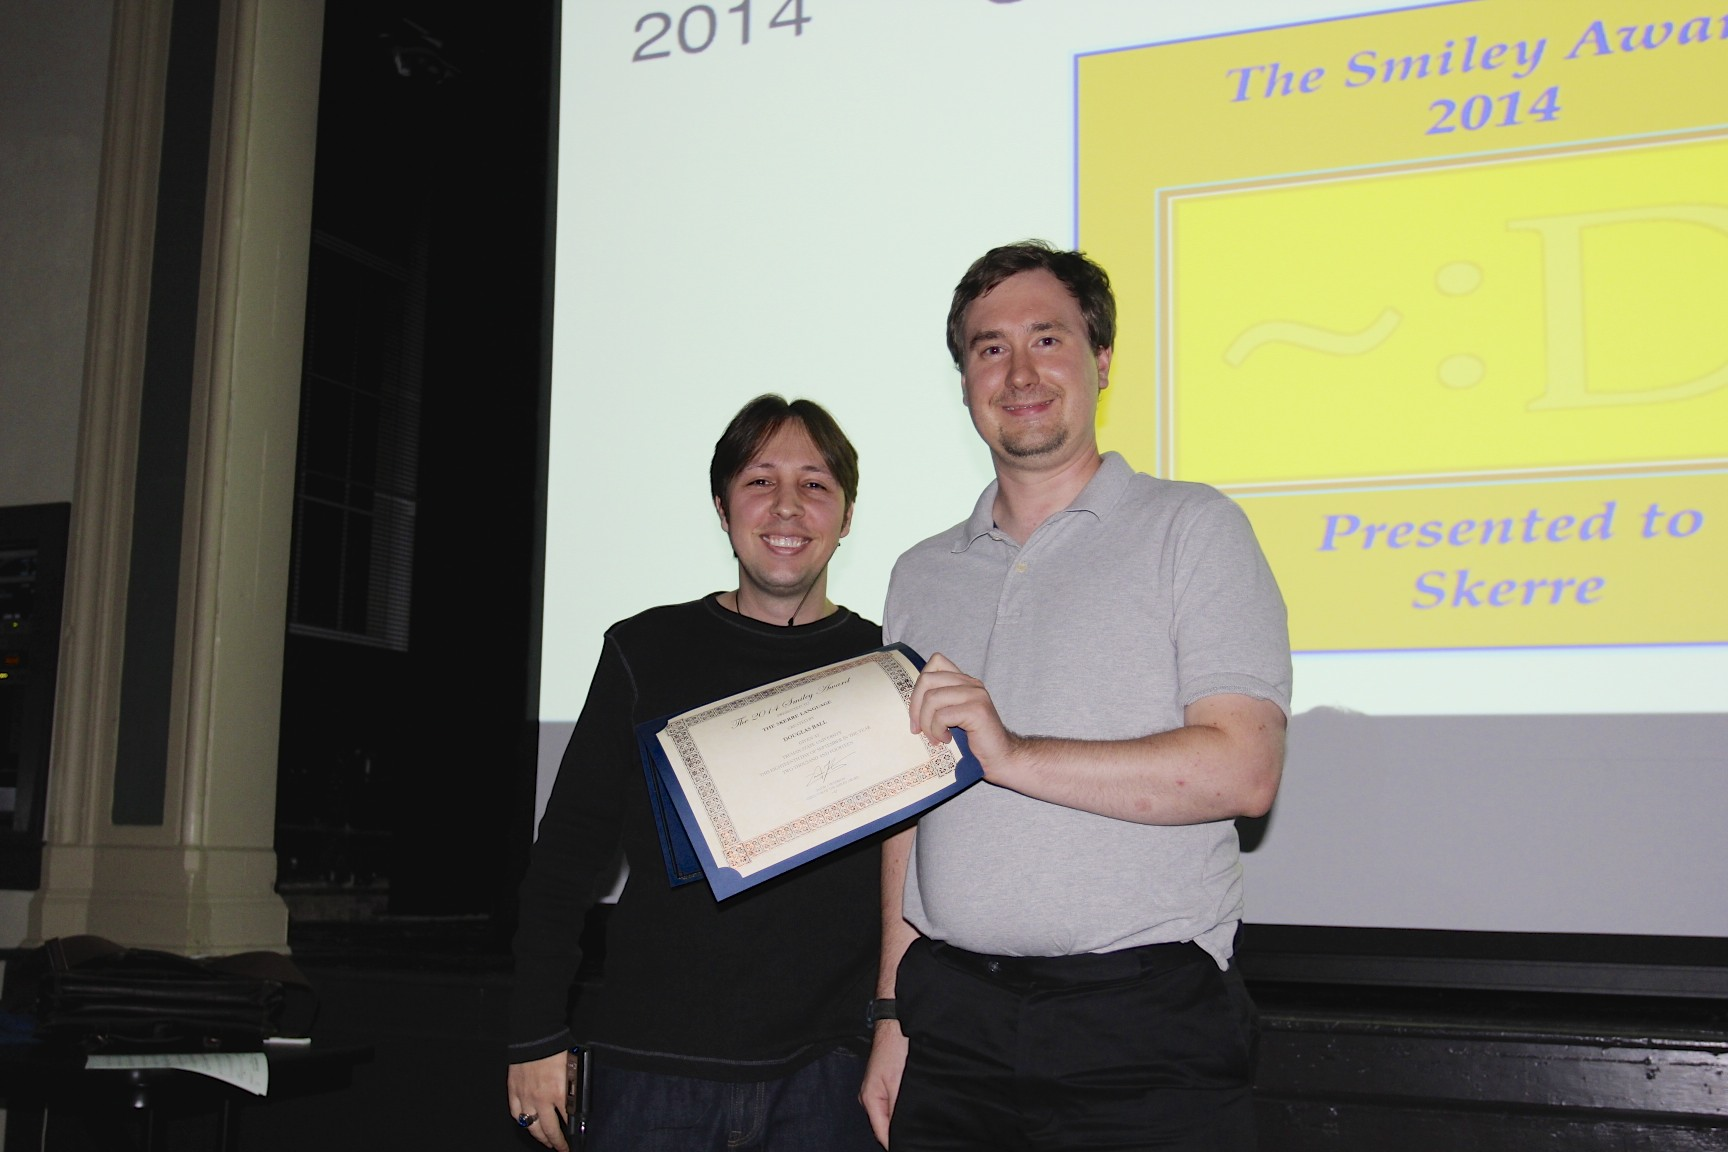 A picture of me and Doug as I presented him with the 2014 Smiley Award.